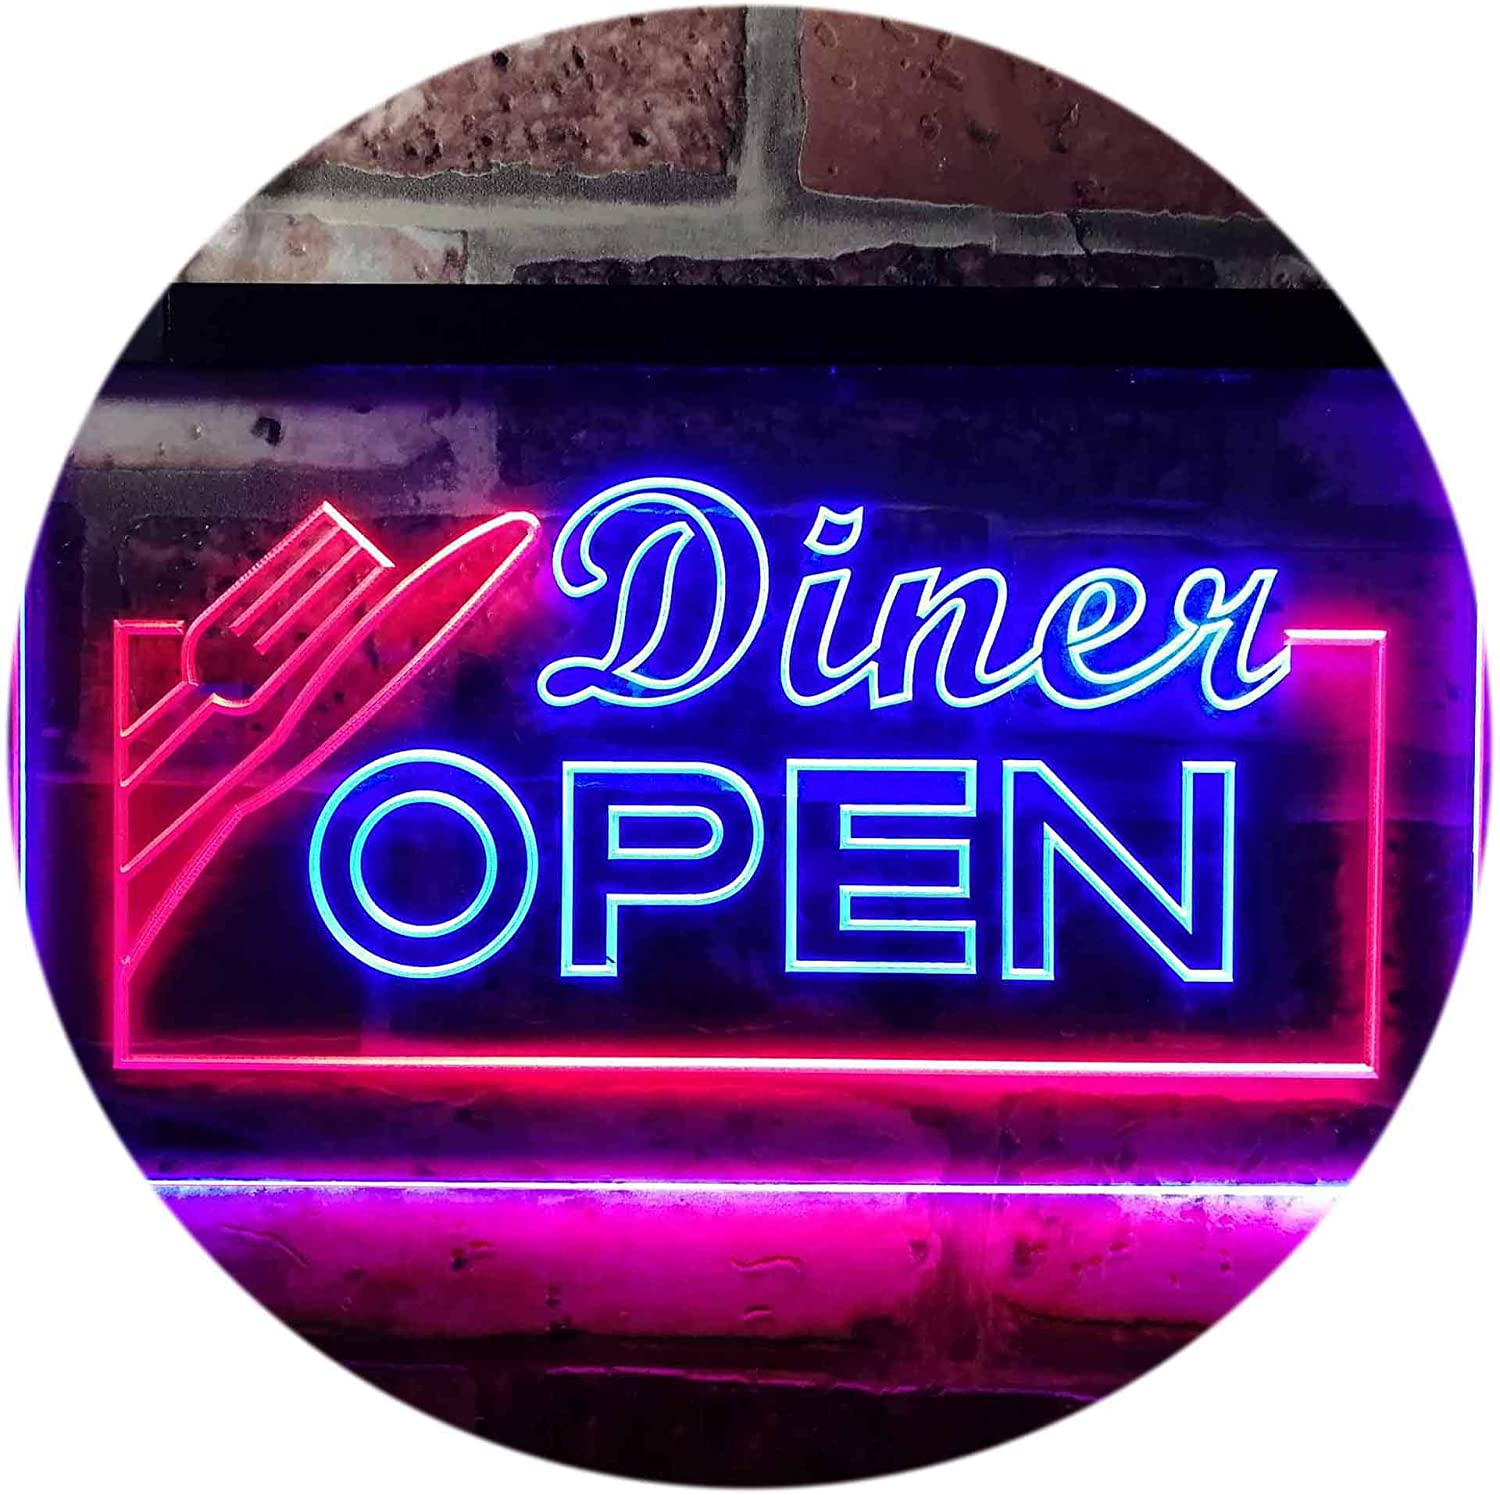 ADV PRO Diner Open Restaurant Café Bar Dual Color LED Enseigne Lumineuse Neon Sign Rouge et Bleu 600 x 400mm st6s64-j0718-rb